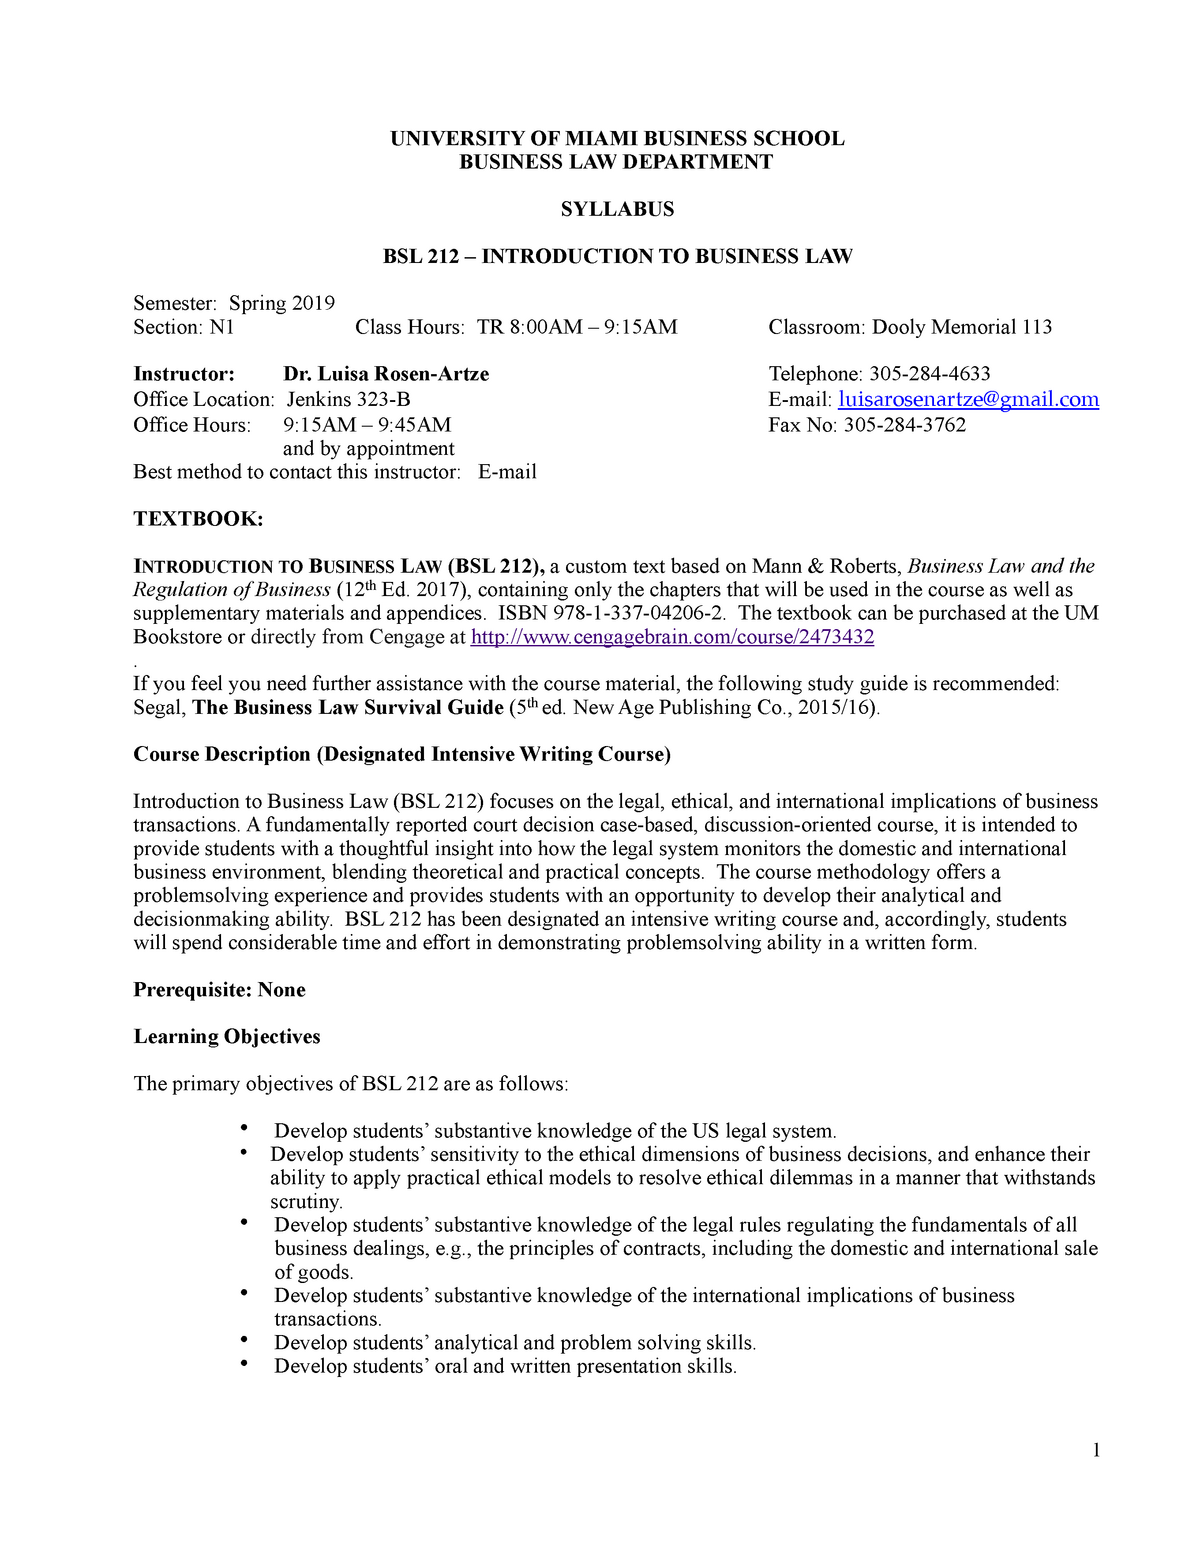 BSL212 Spring 2019 - Syllabus - BSL 212 Intro To Bus Law